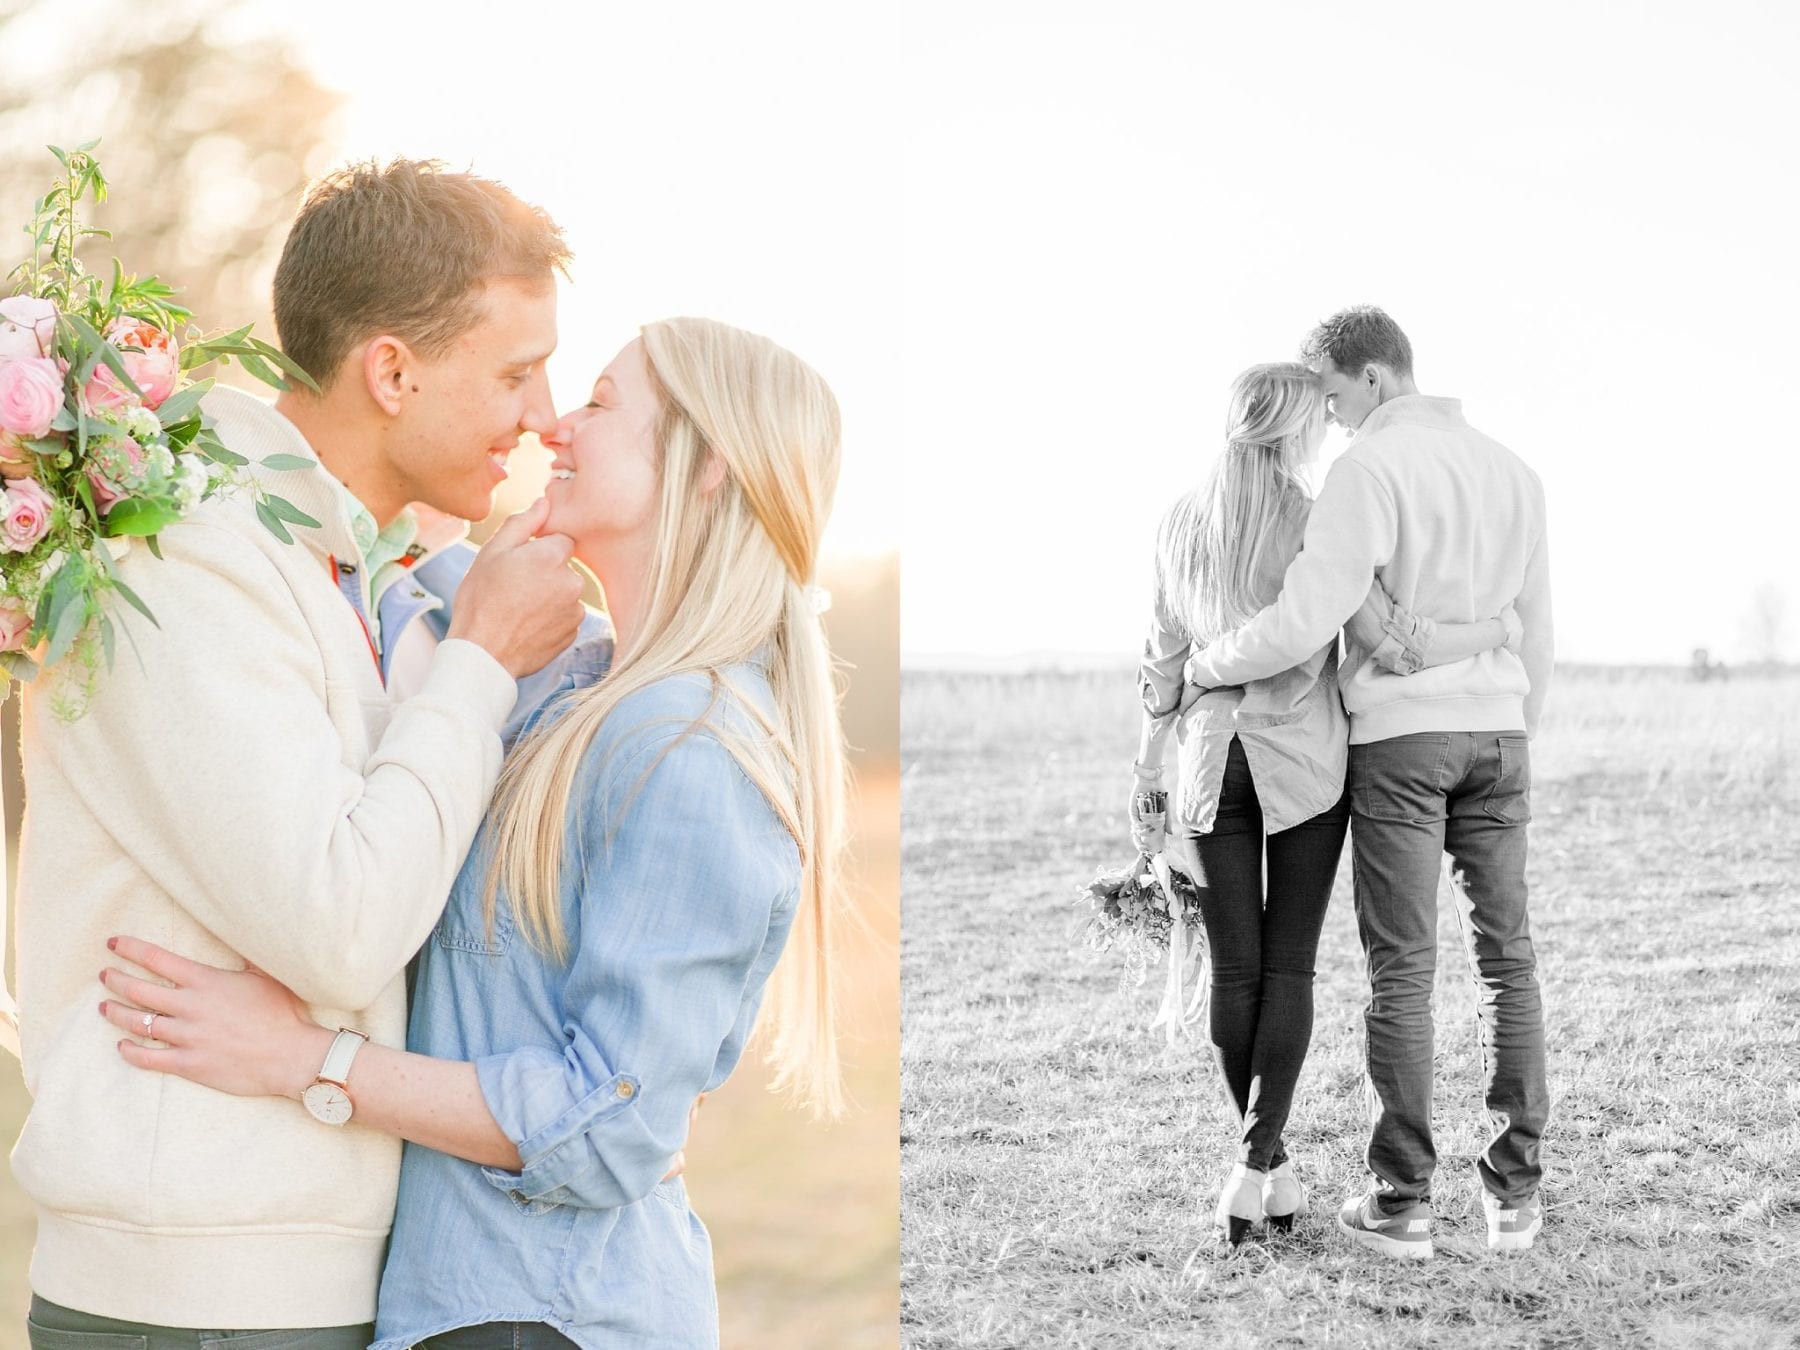 Manassas Battlefield Engagement Session Virginia Wedding Photographer Danielle & Charlie Megan Kelsey Photography-5667.jpg